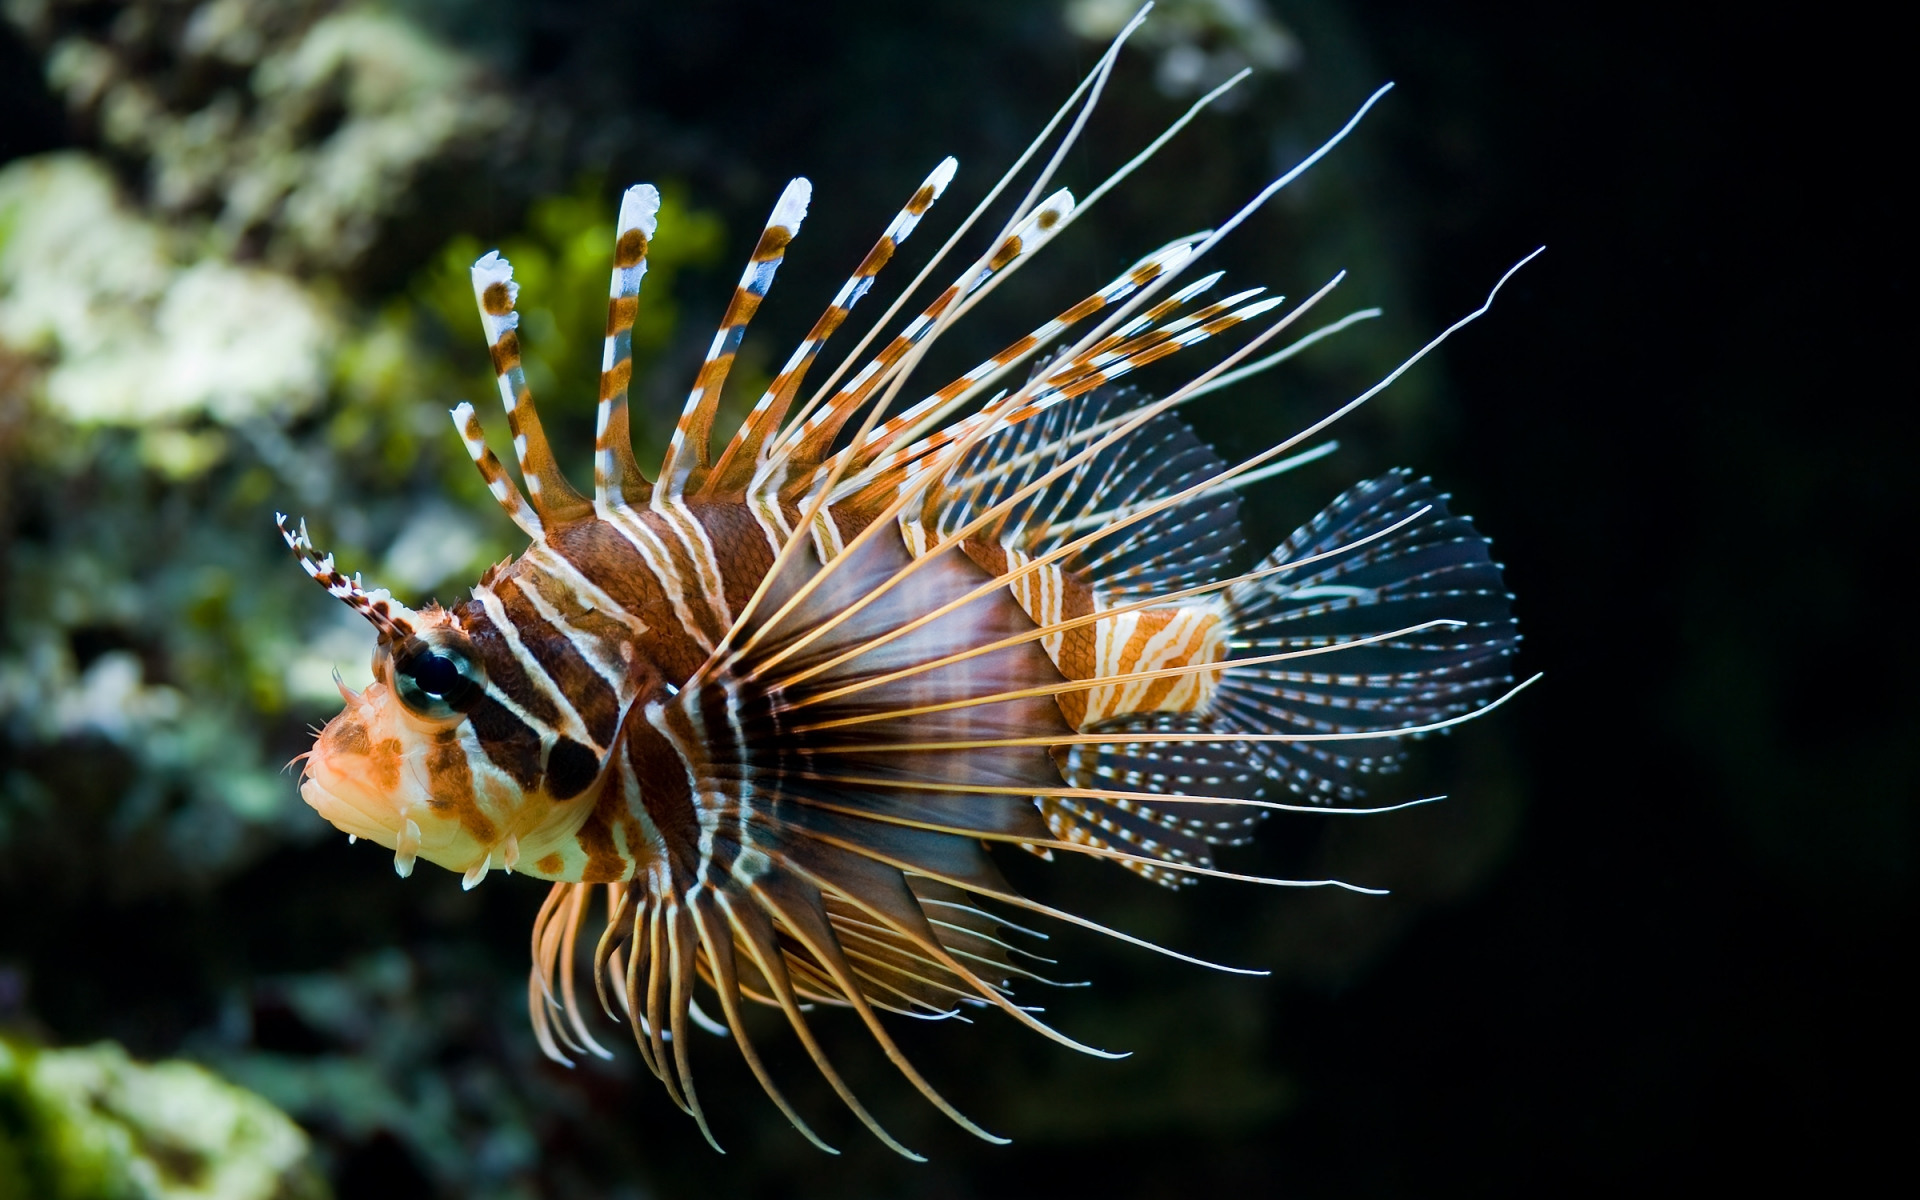 35310 download wallpaper Animals, Fishes screensavers and pictures for free